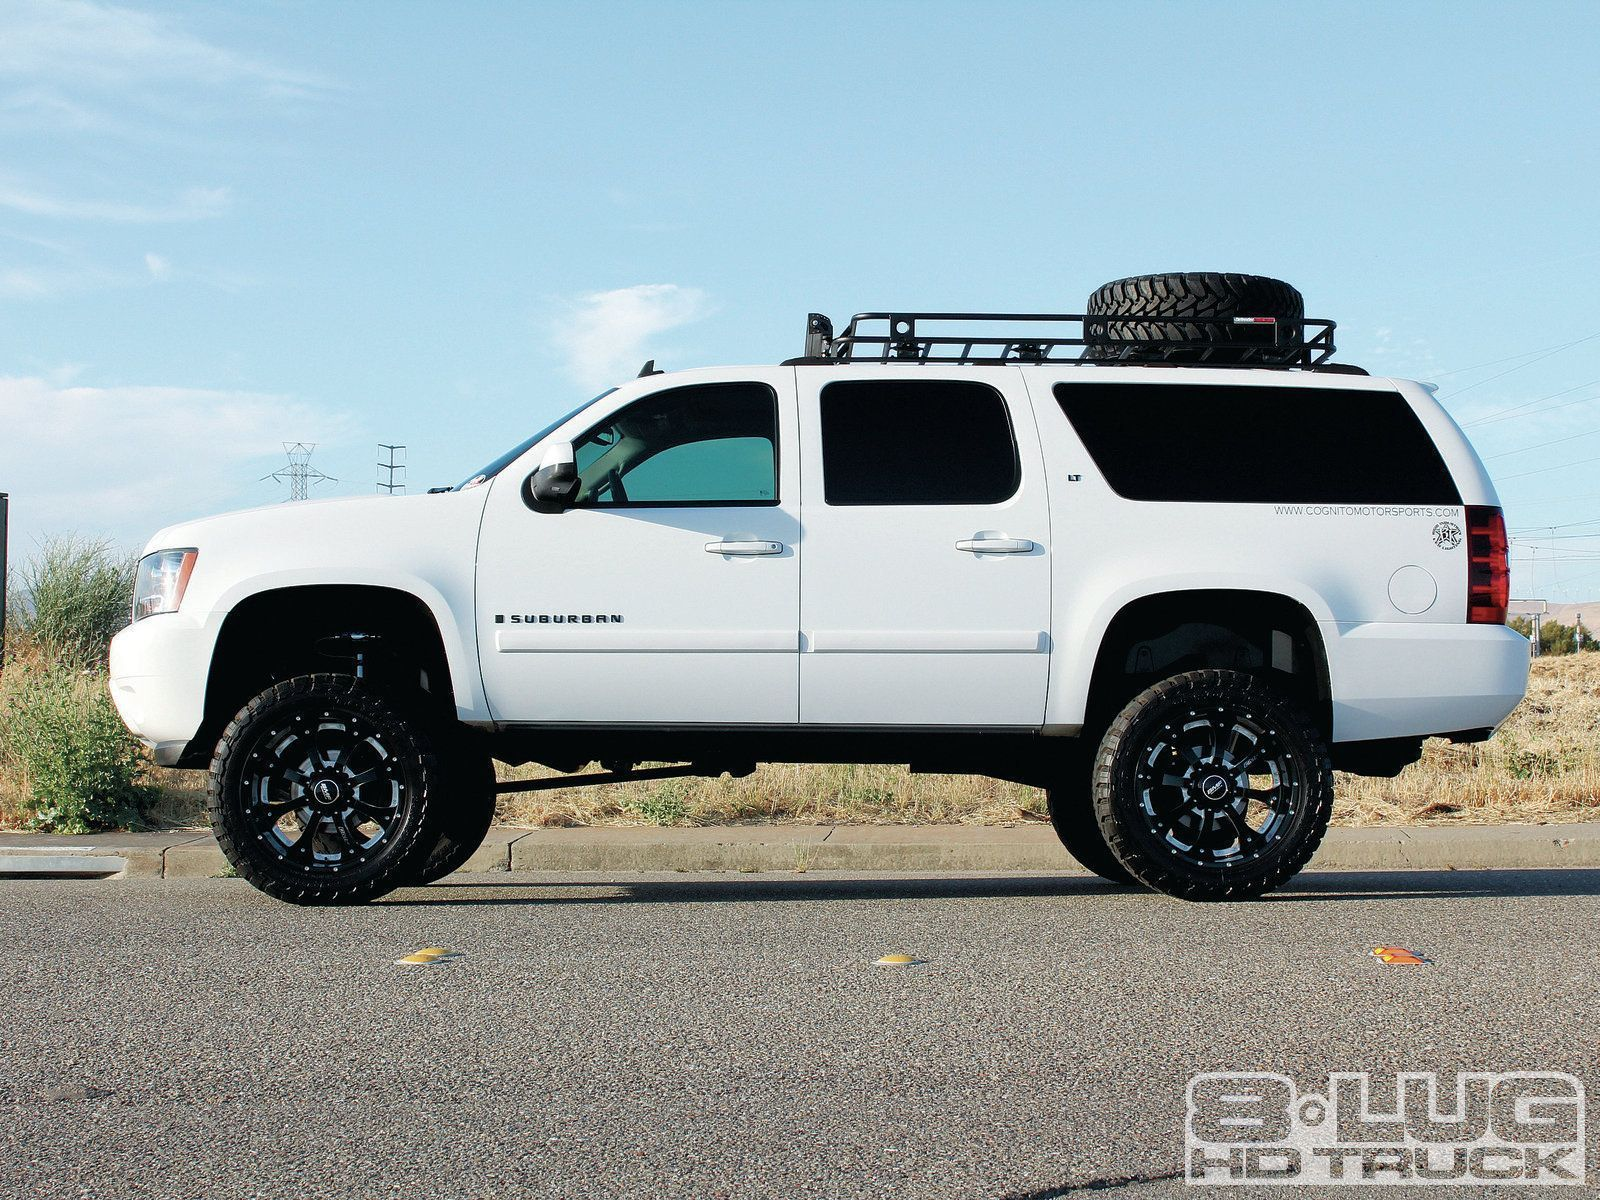 Pin By Scott Burcham On Auto In 2020 Chevy Chevy Suburban Roof Rack